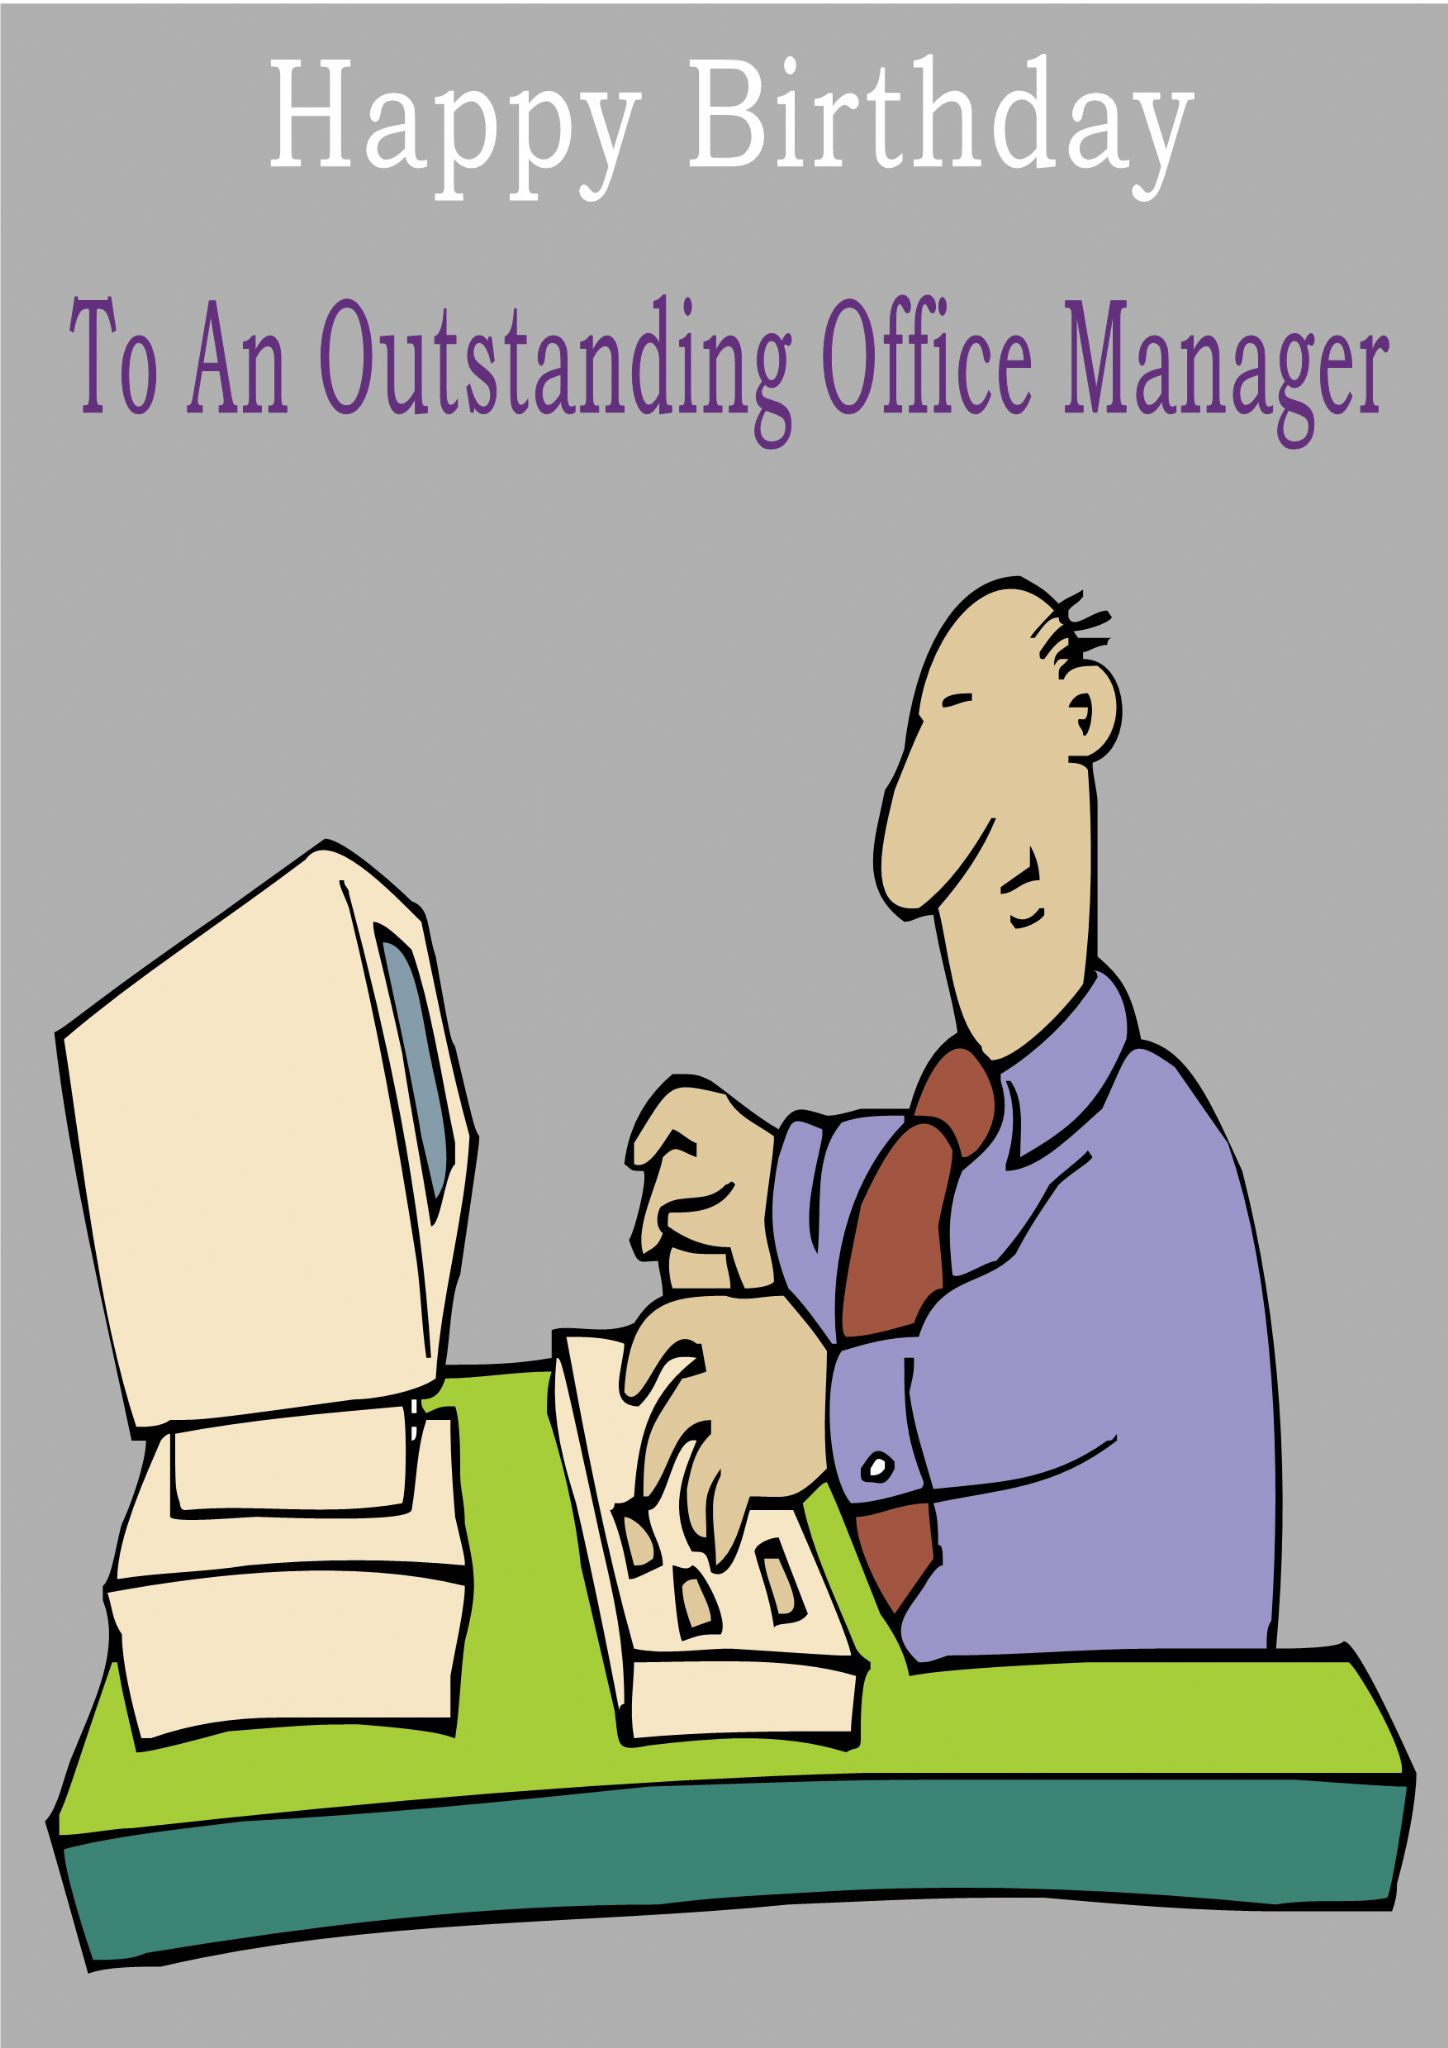 Office Manager Greeting Card